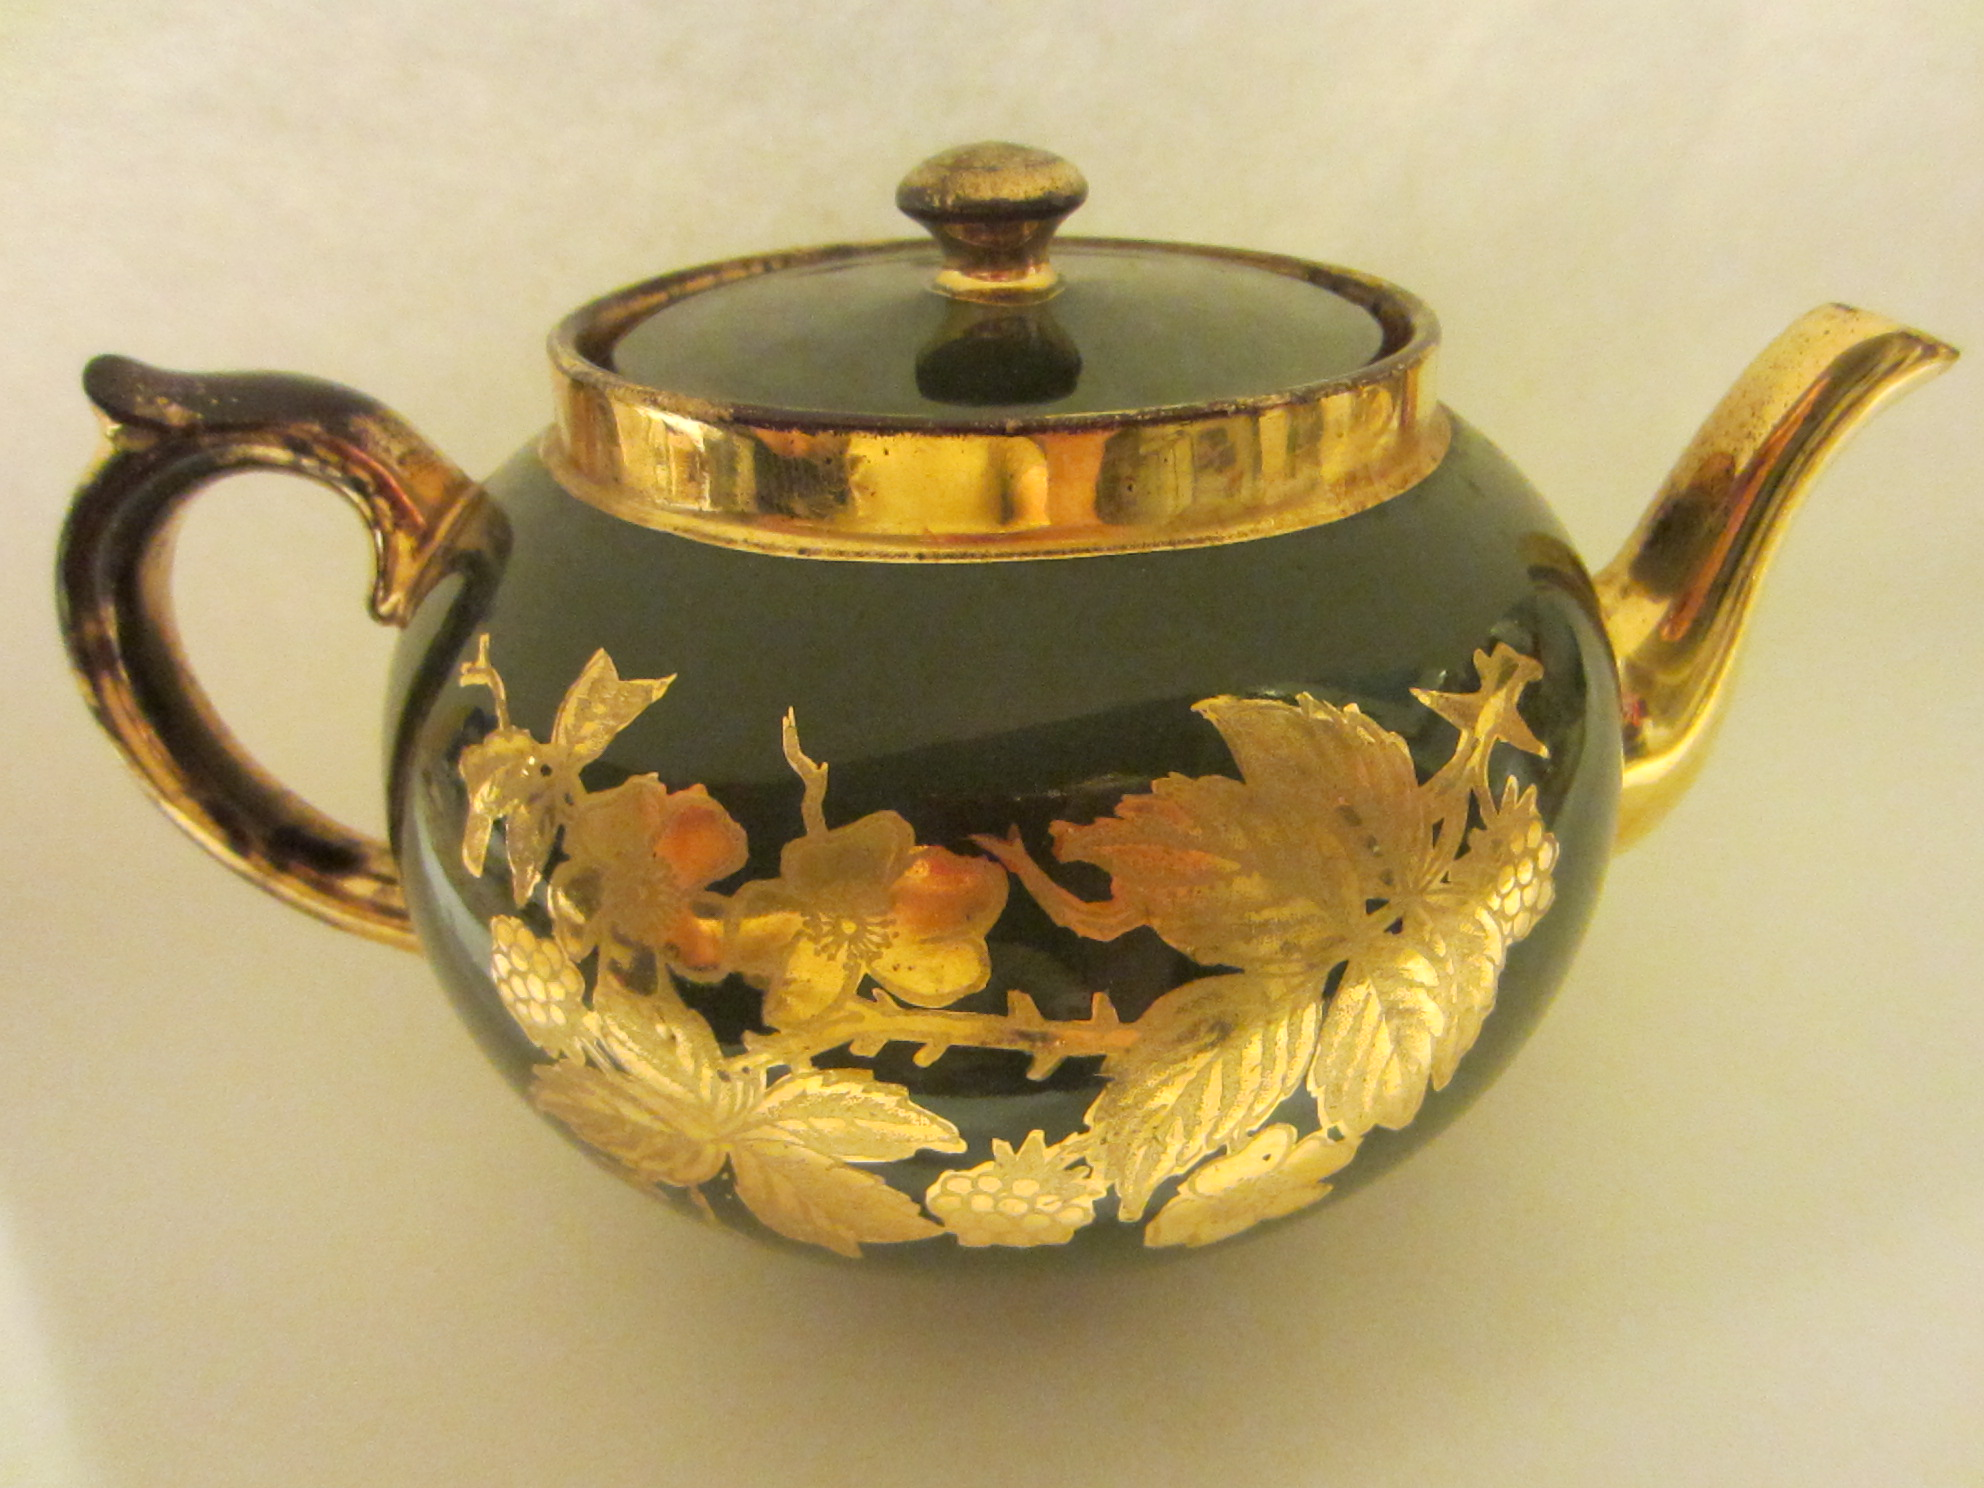 Making Tea In A Teapot Staffordshire England Teapot Gold Flowers Sage Green